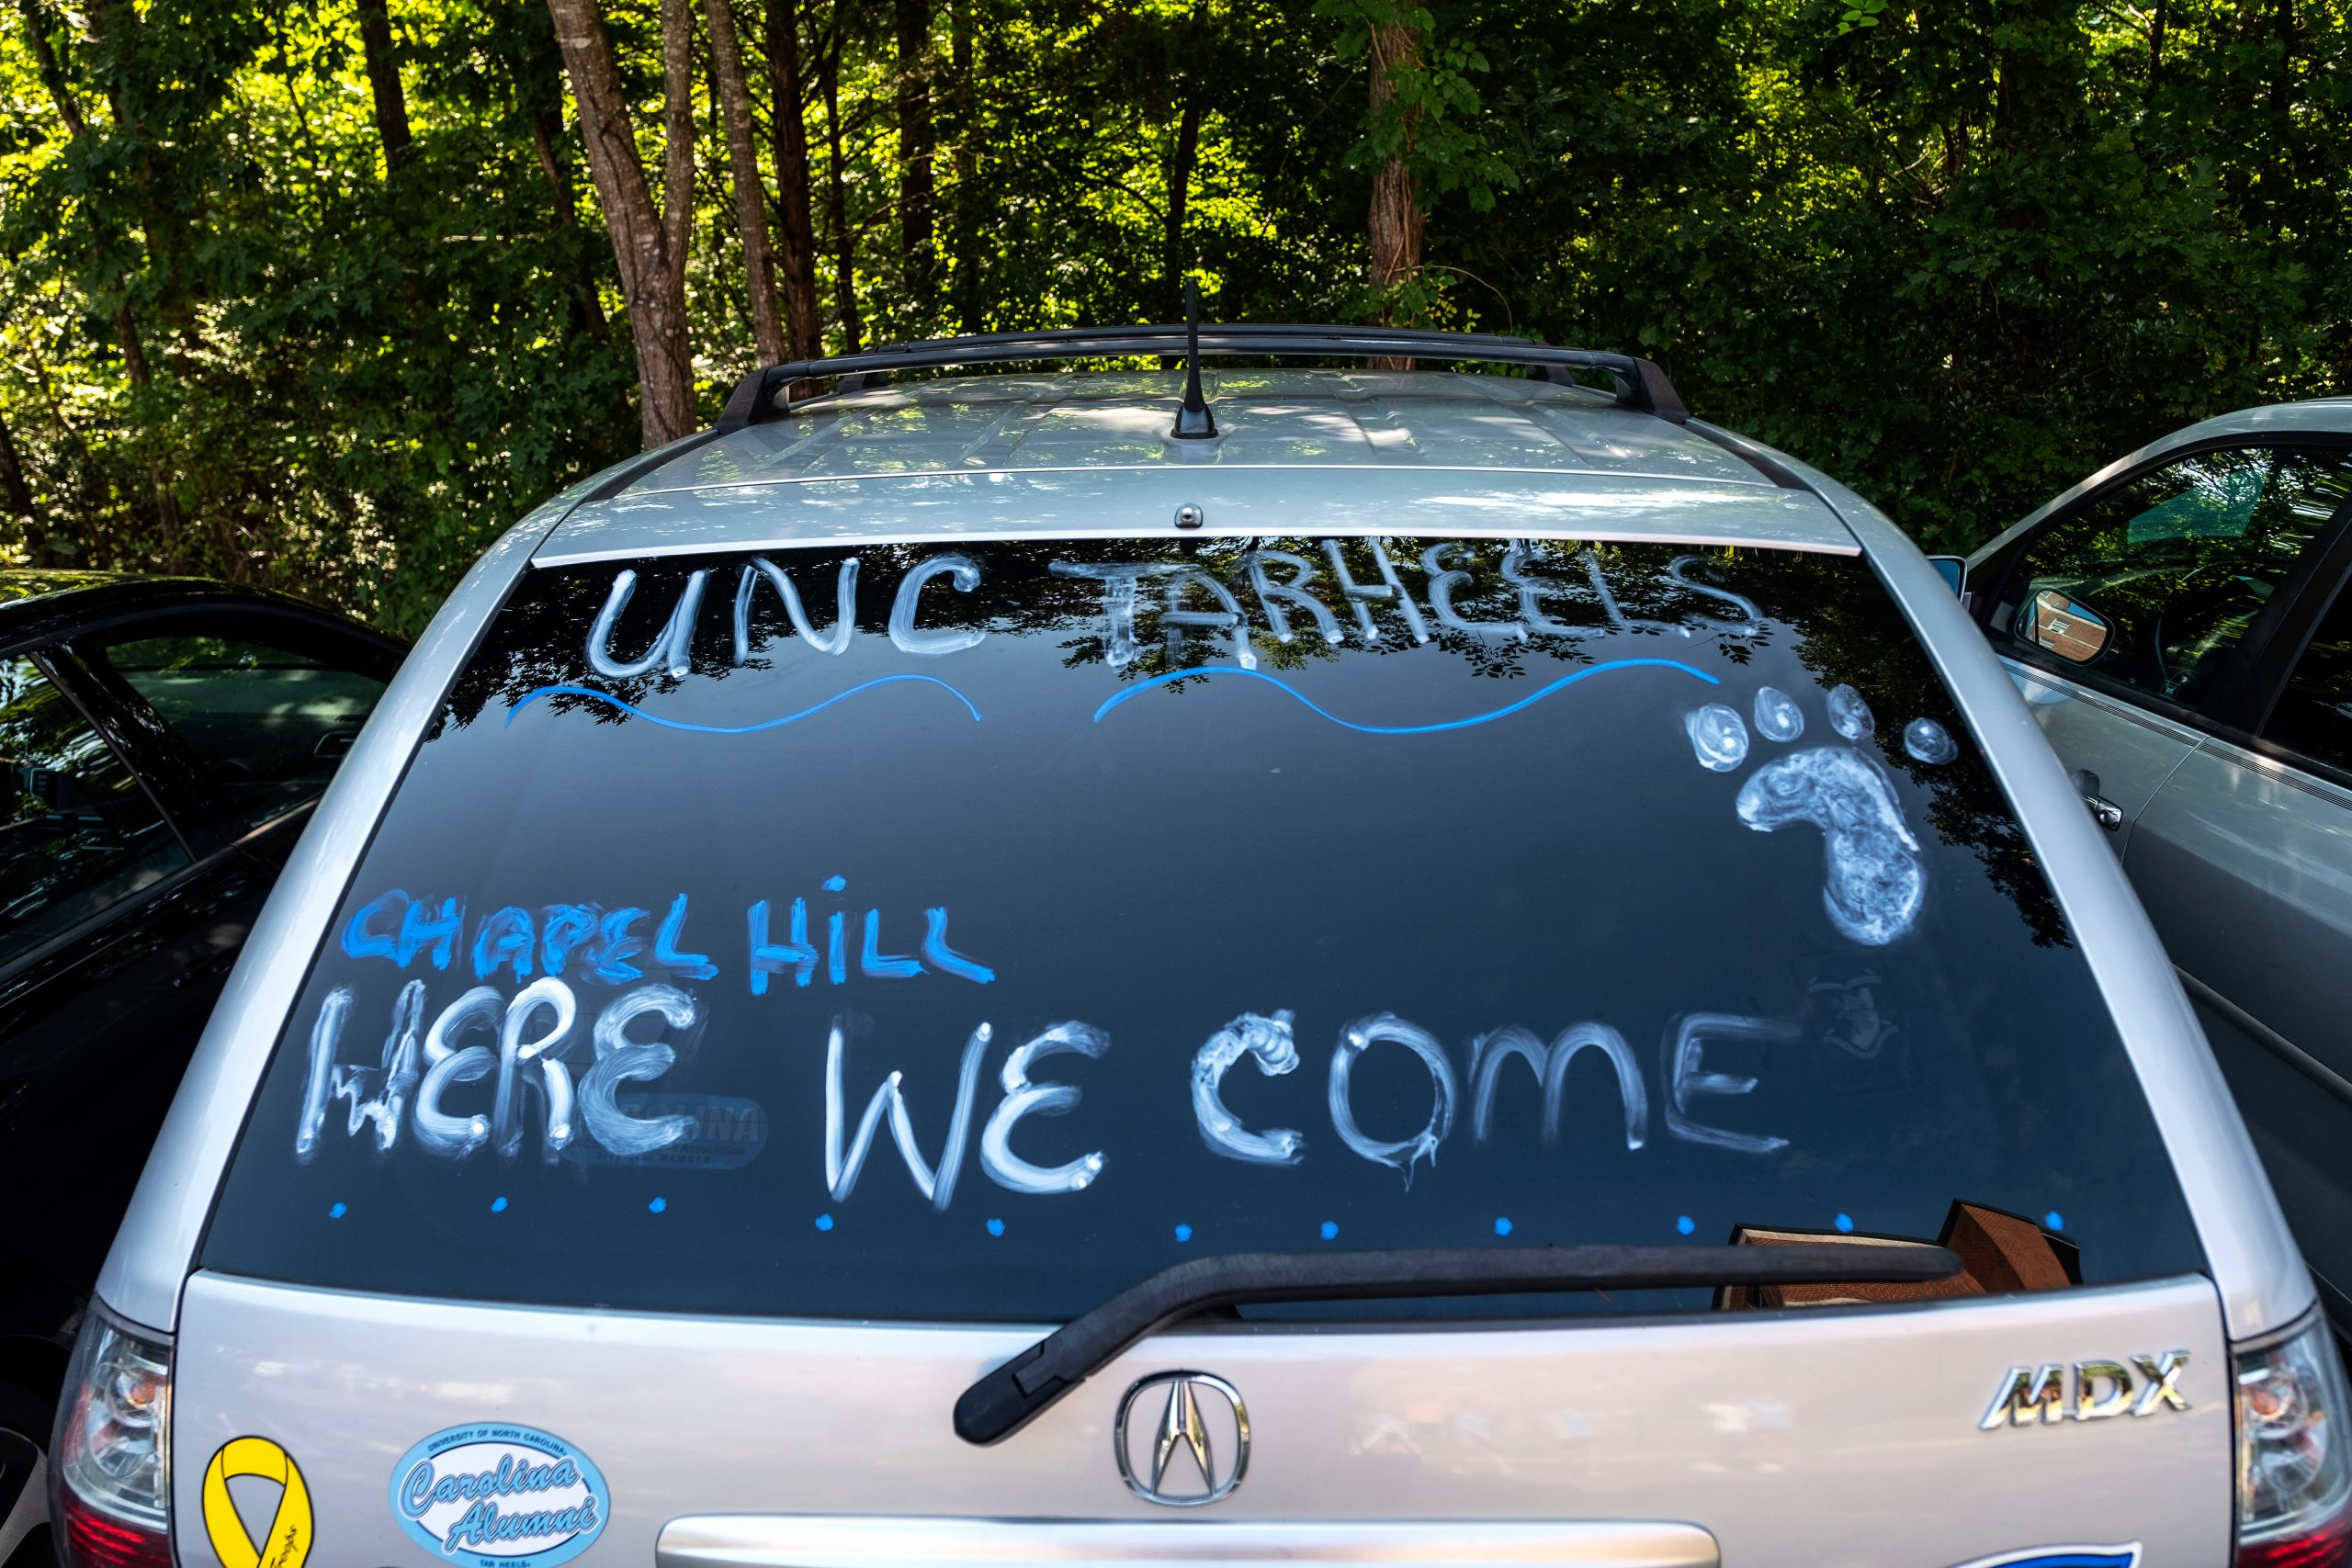 New student move-in on the campus of the University of North Carolina at Chapel Hill.